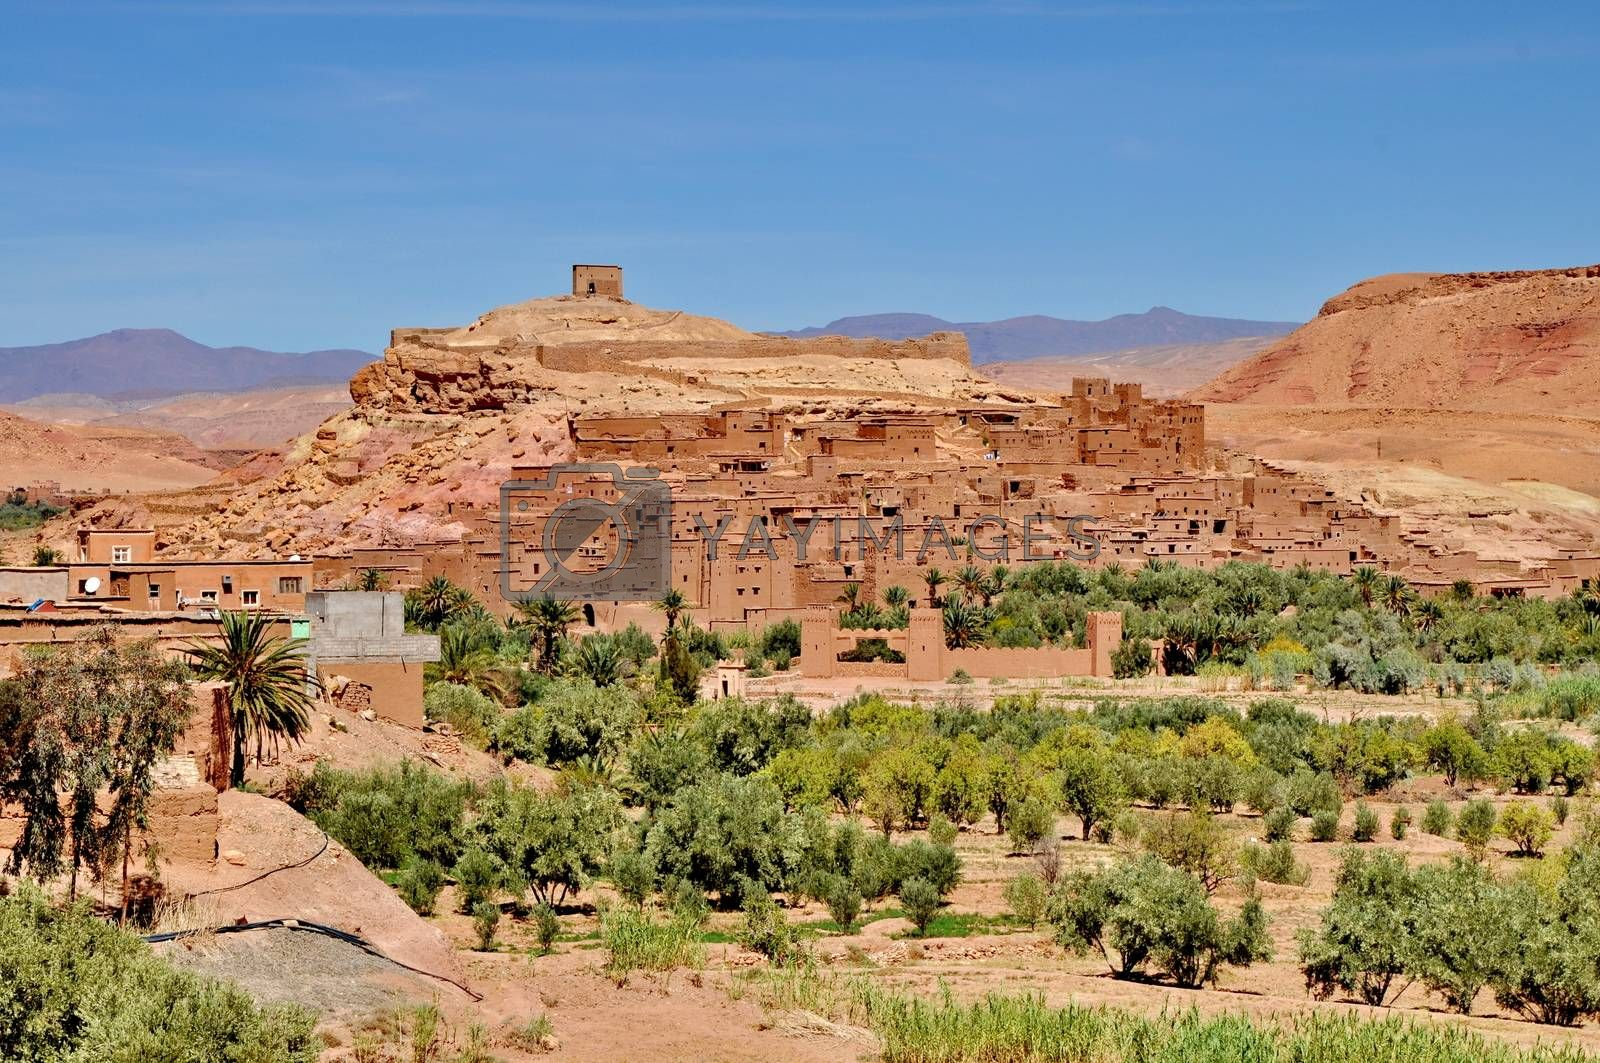 Royalty free image of Ait Benhaddou Ksar Kasbah near Ourzazate in Morocco by anderm